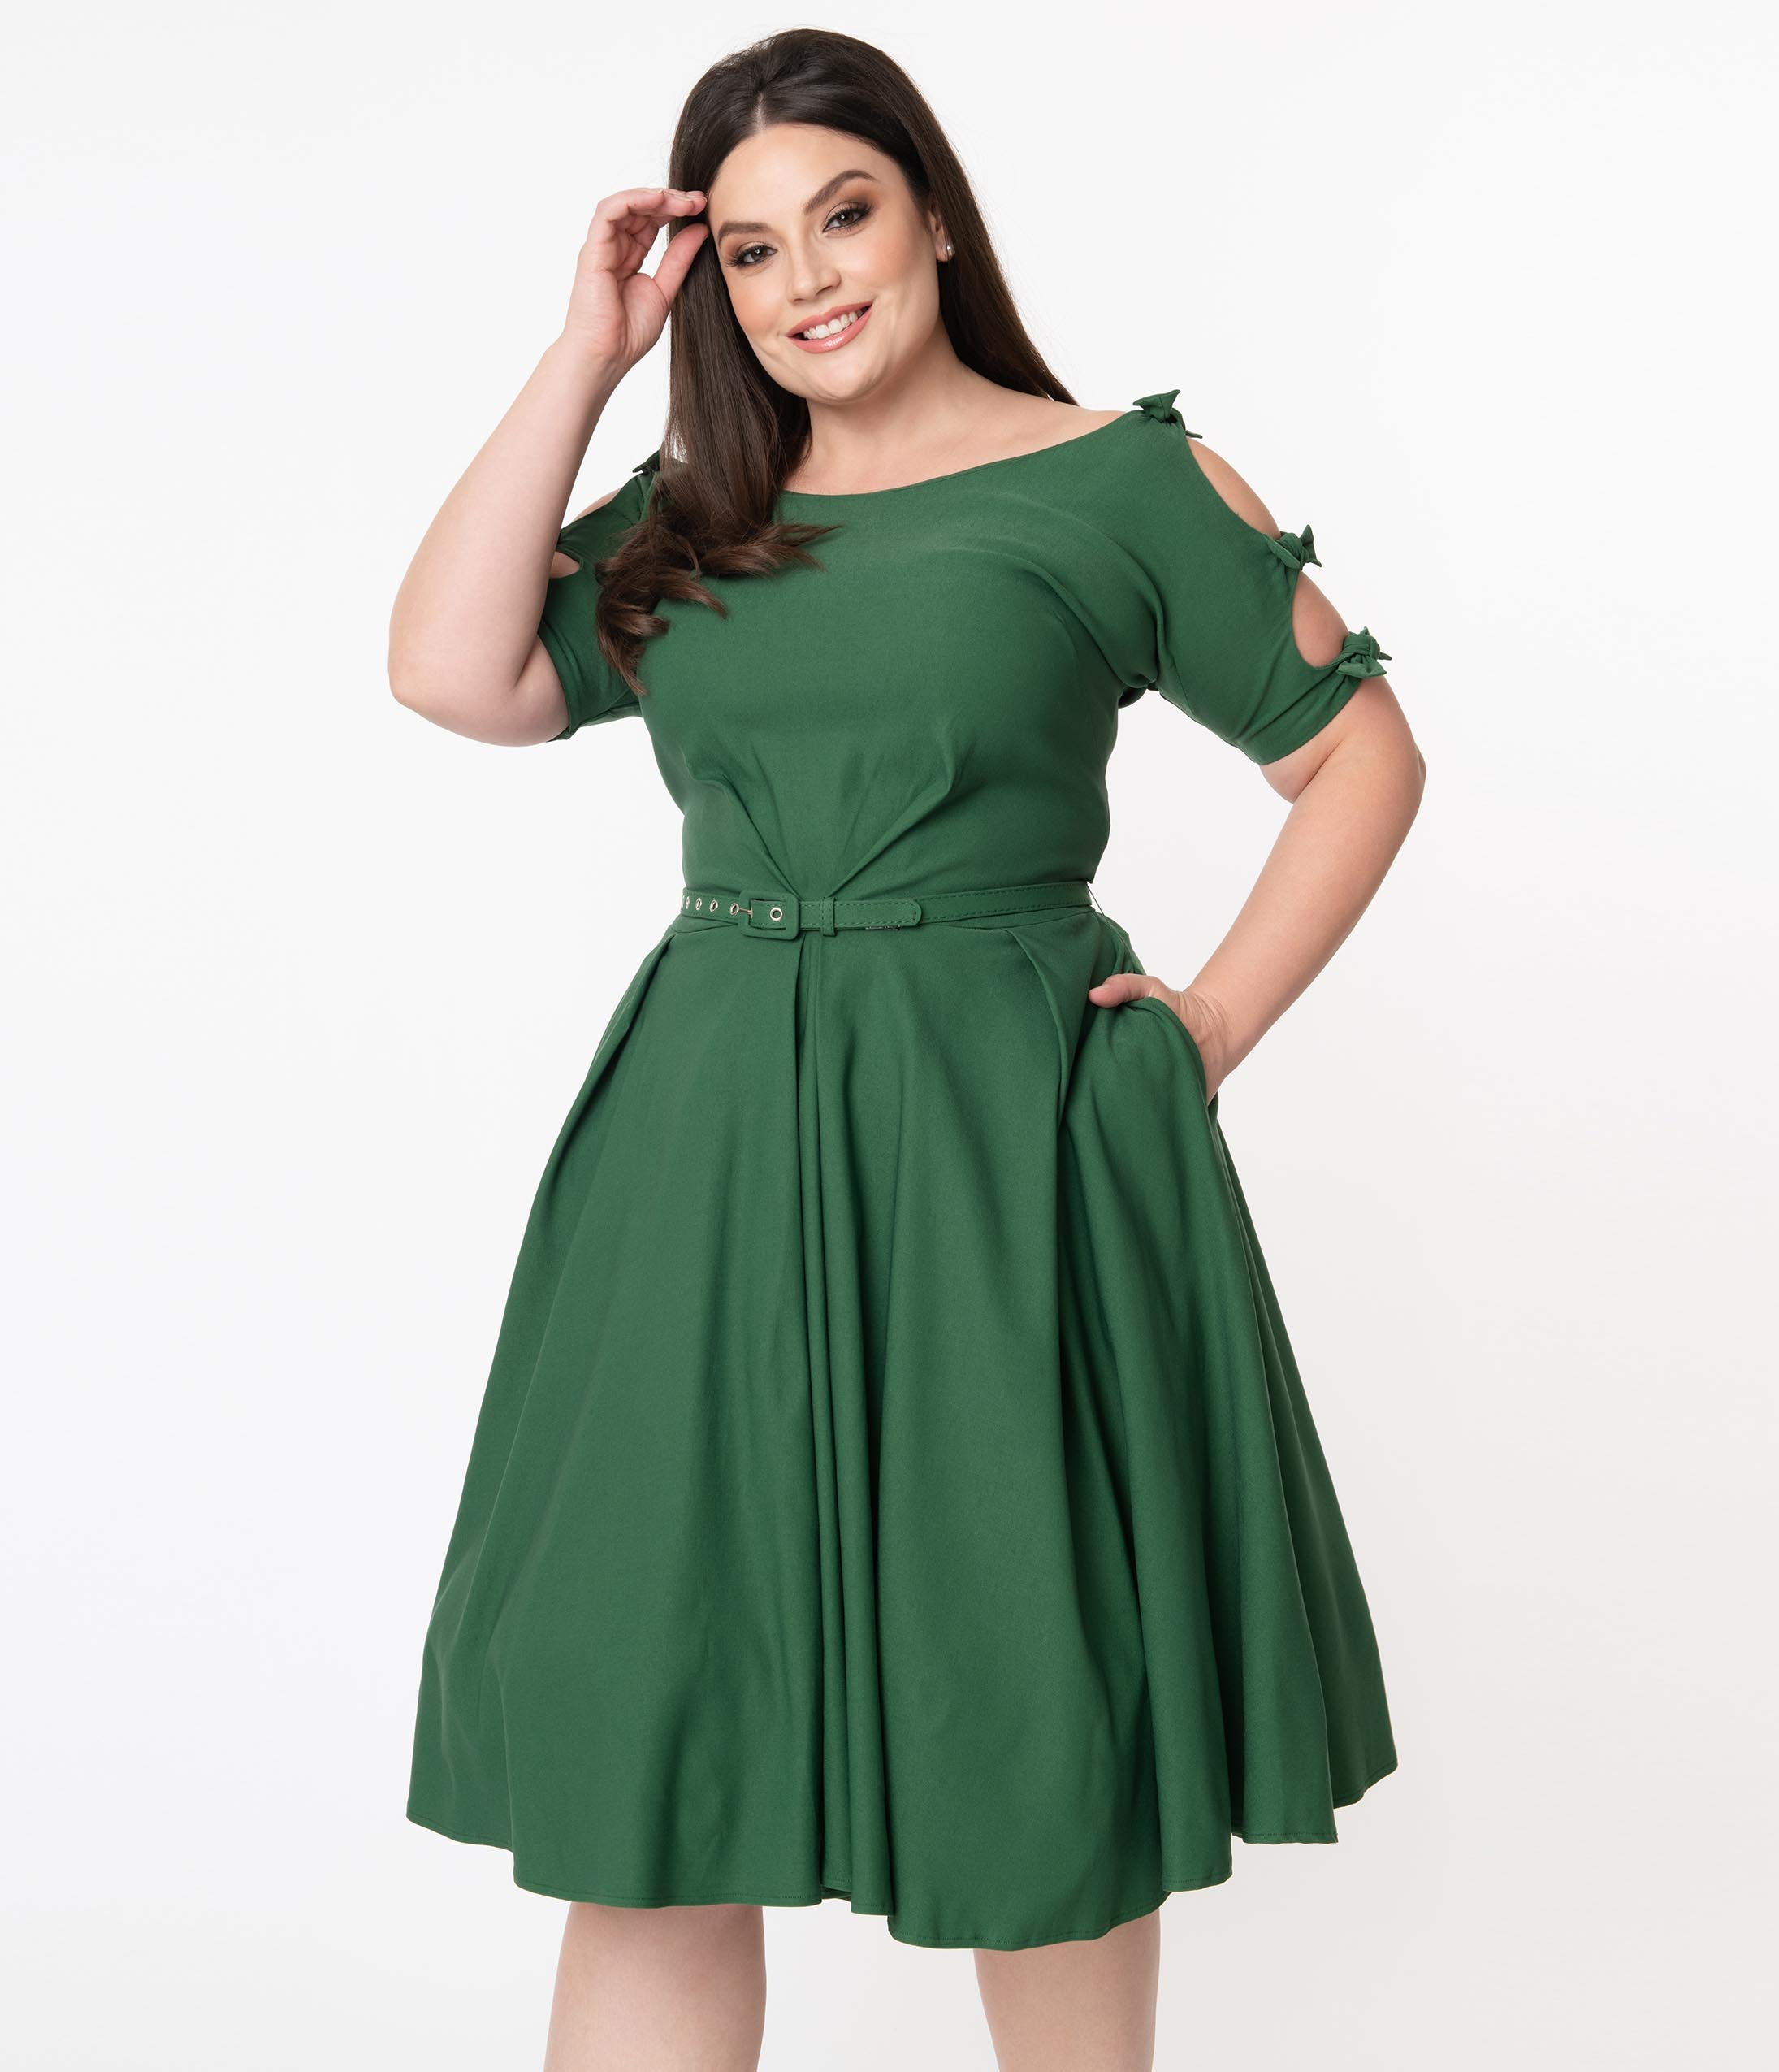 1950s Plus Size Fashion & Clothing History Unique Vintage Plus Size 1950S Green Selma Swing Dress $88.00 AT vintagedancer.com